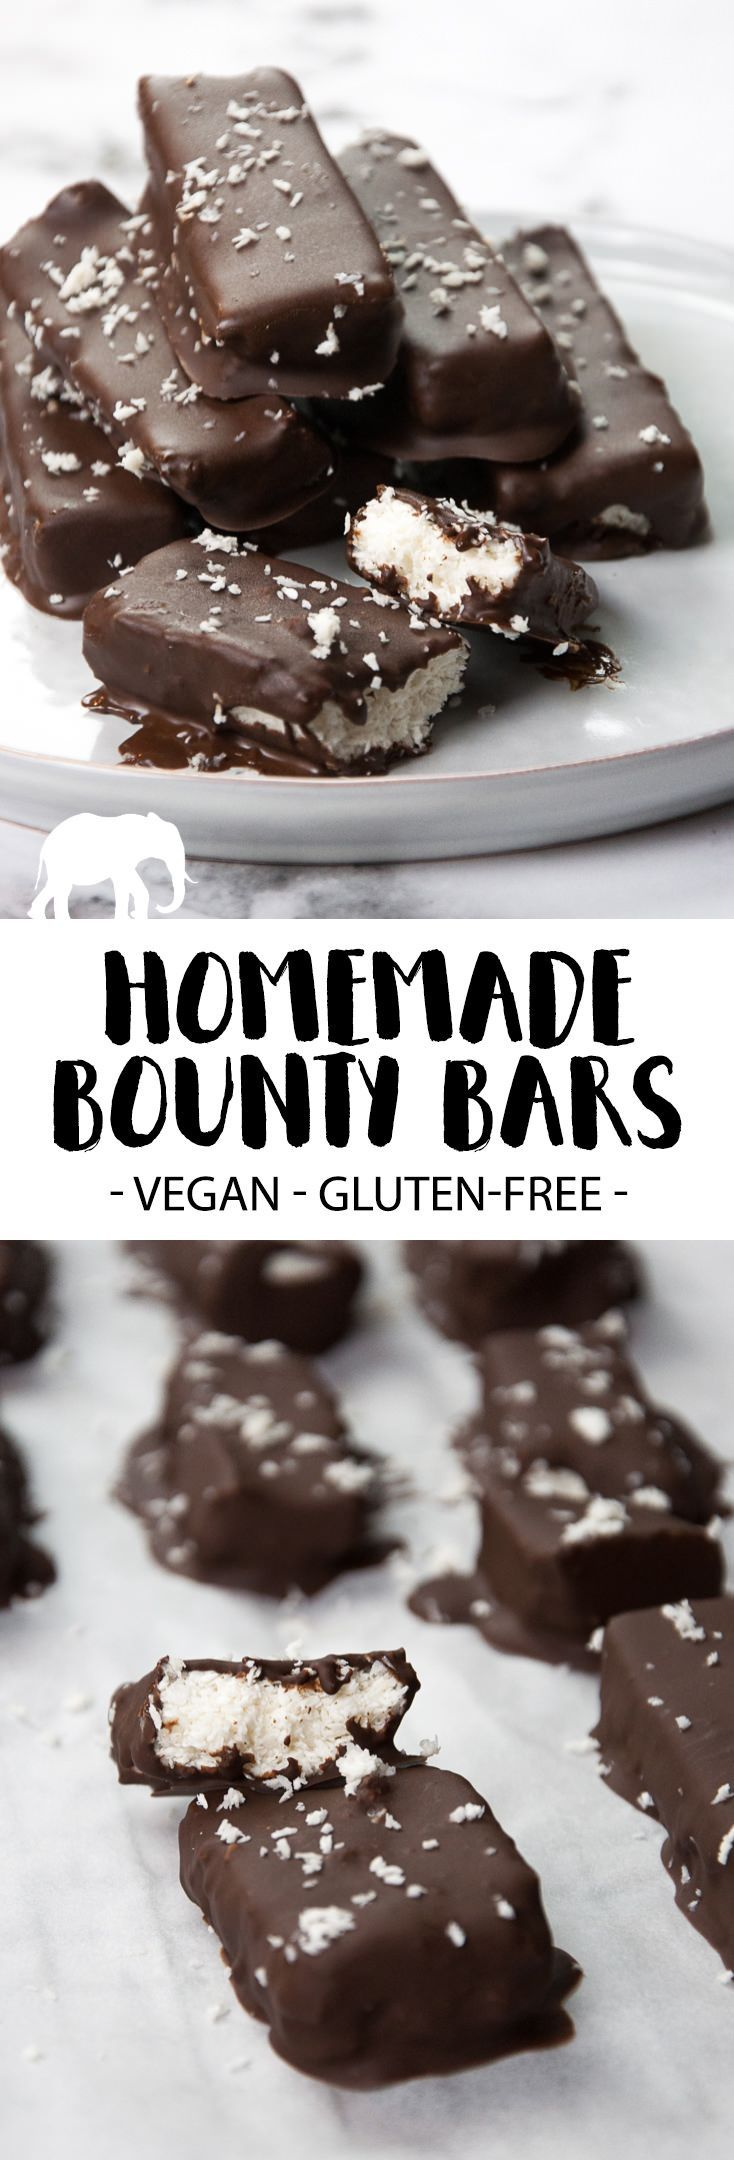 Make your own healthier version of Bounty / Mounds at home! For these gluten-free and vegan Bounty Bars you'll only need 6 ingredients